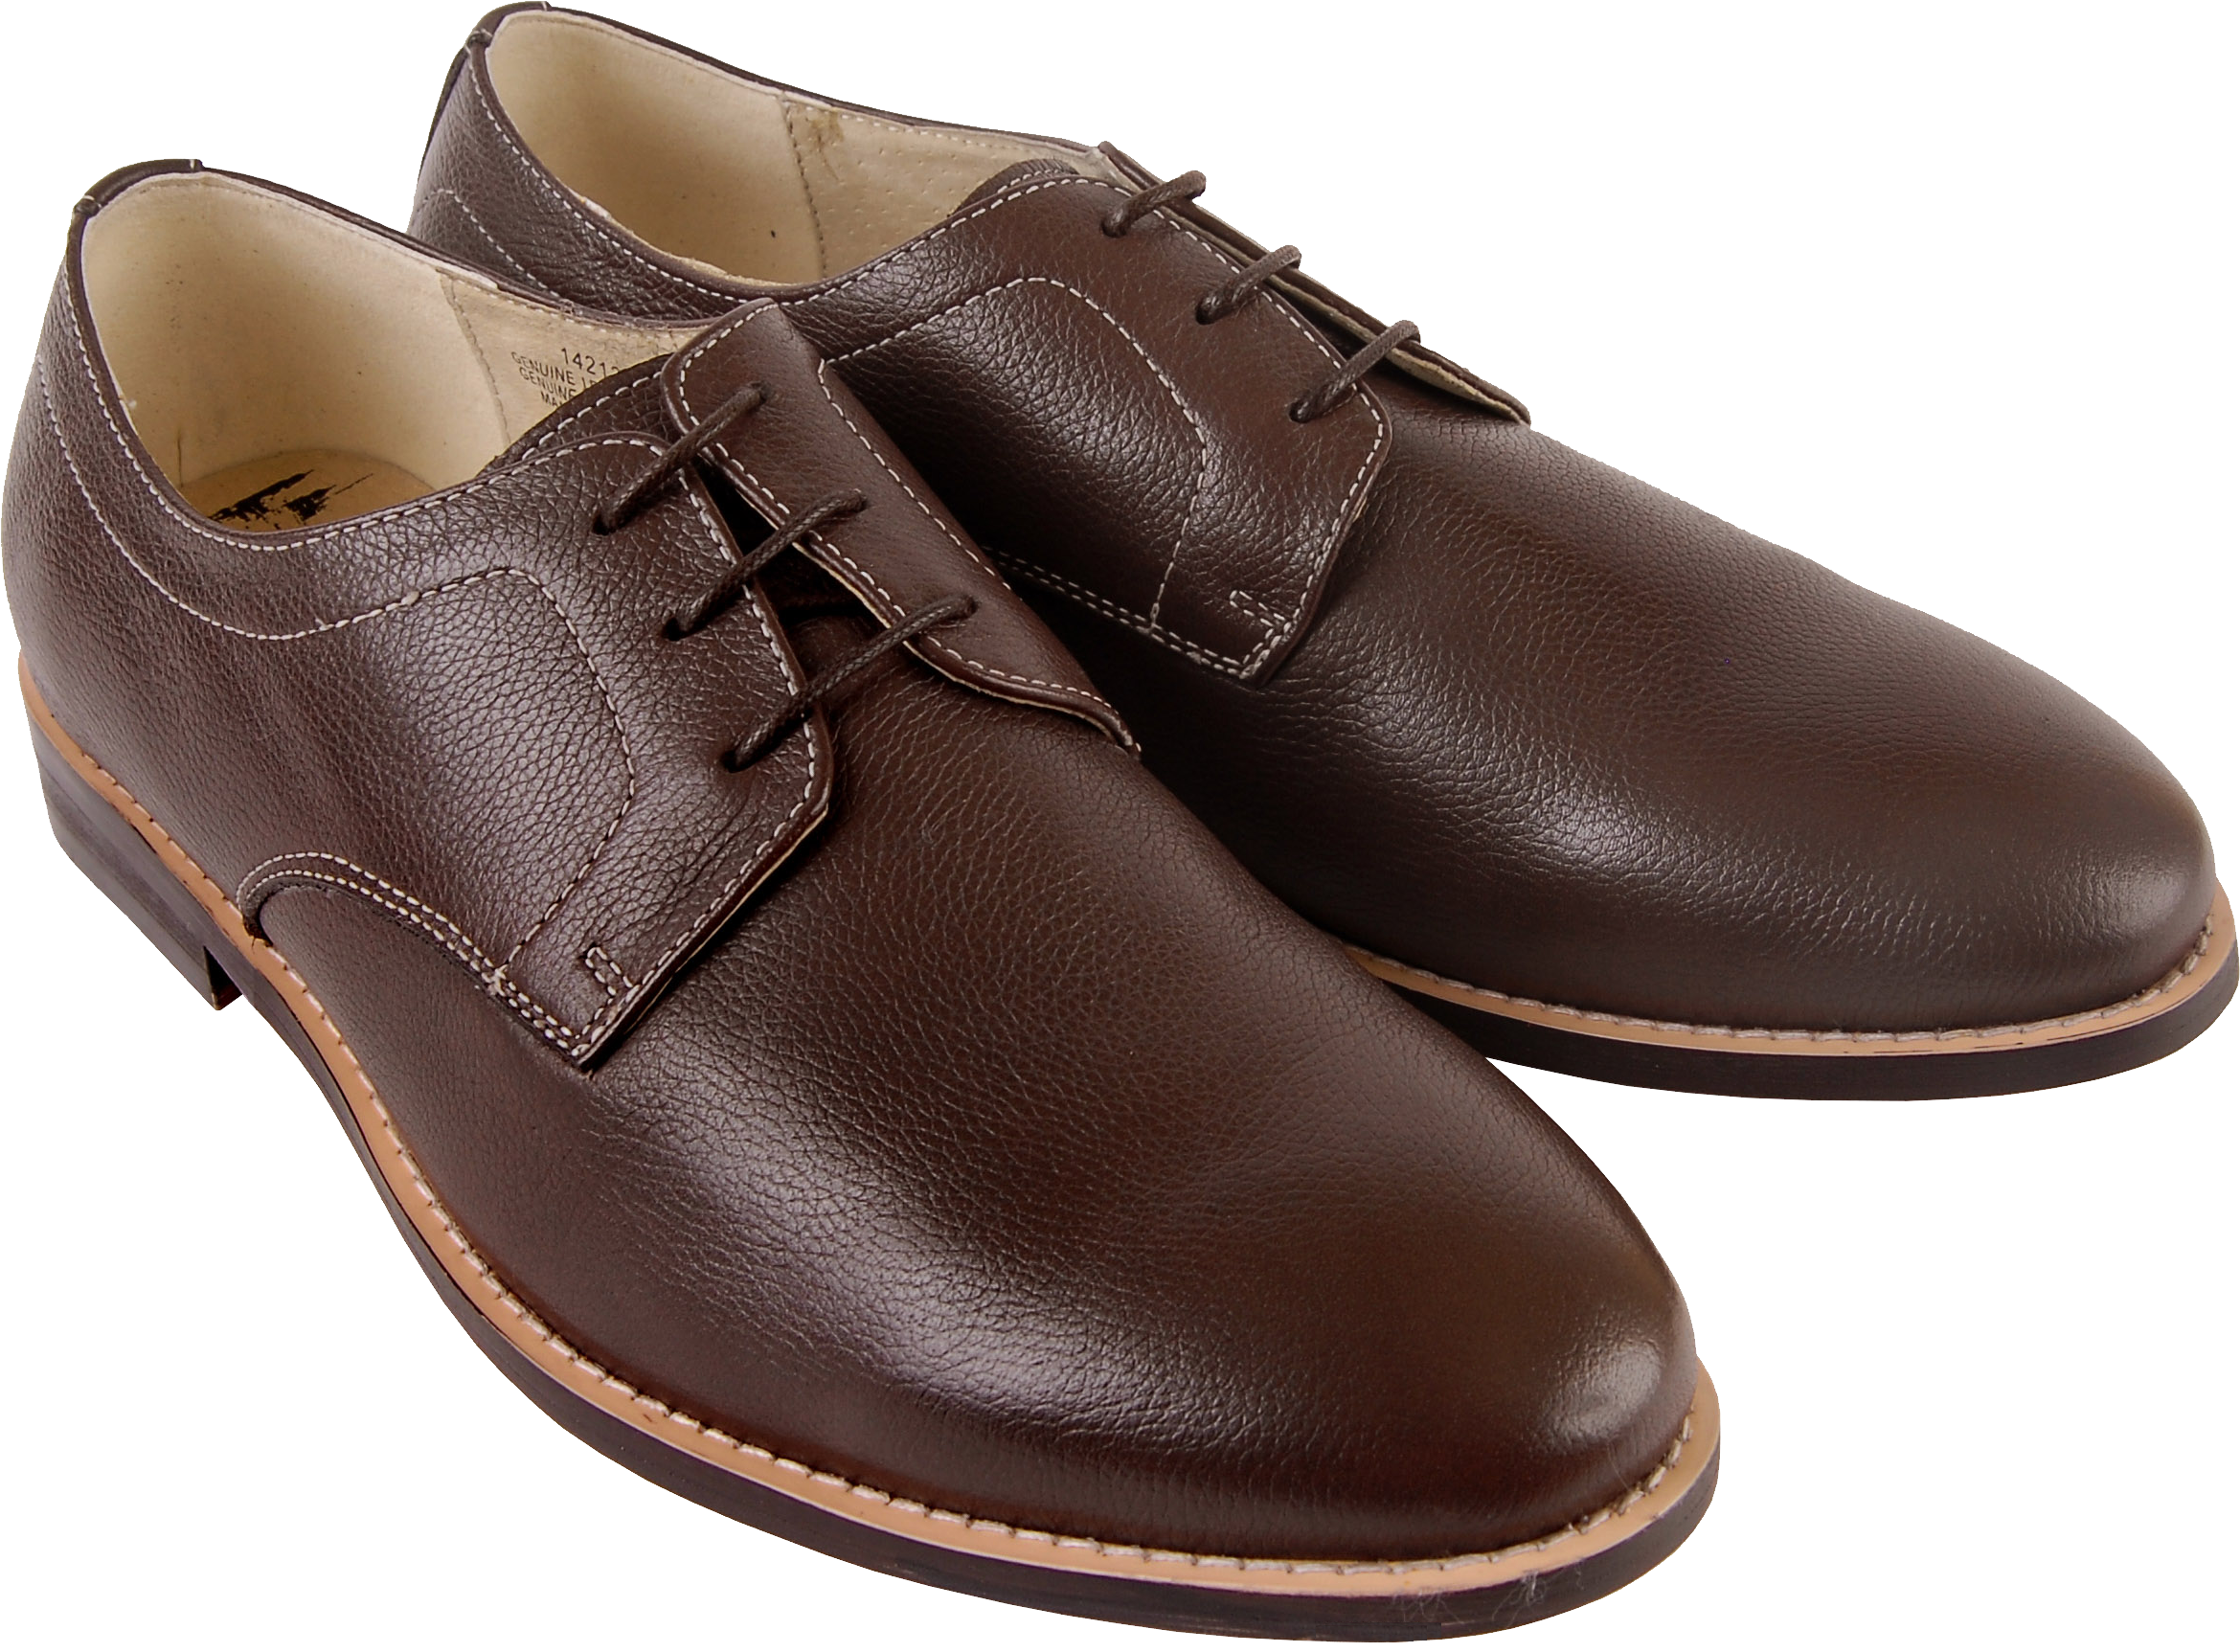 Brown men shoes PNG image